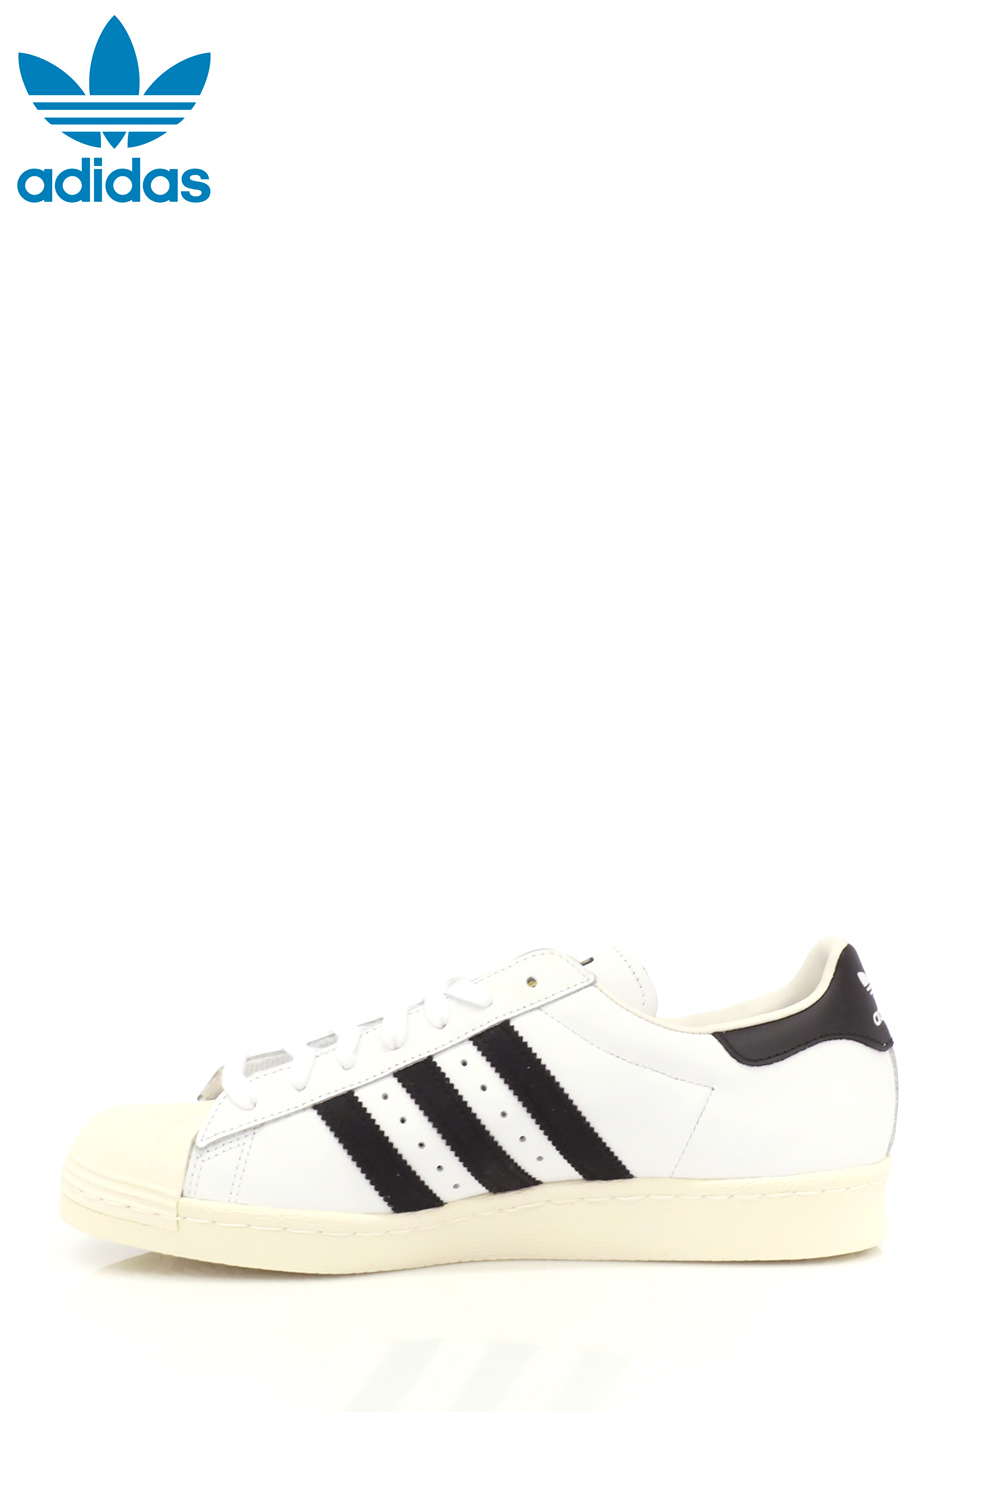 adidas – Ανδρικά sneakers adidas SUPERSTAR 80s λευκά